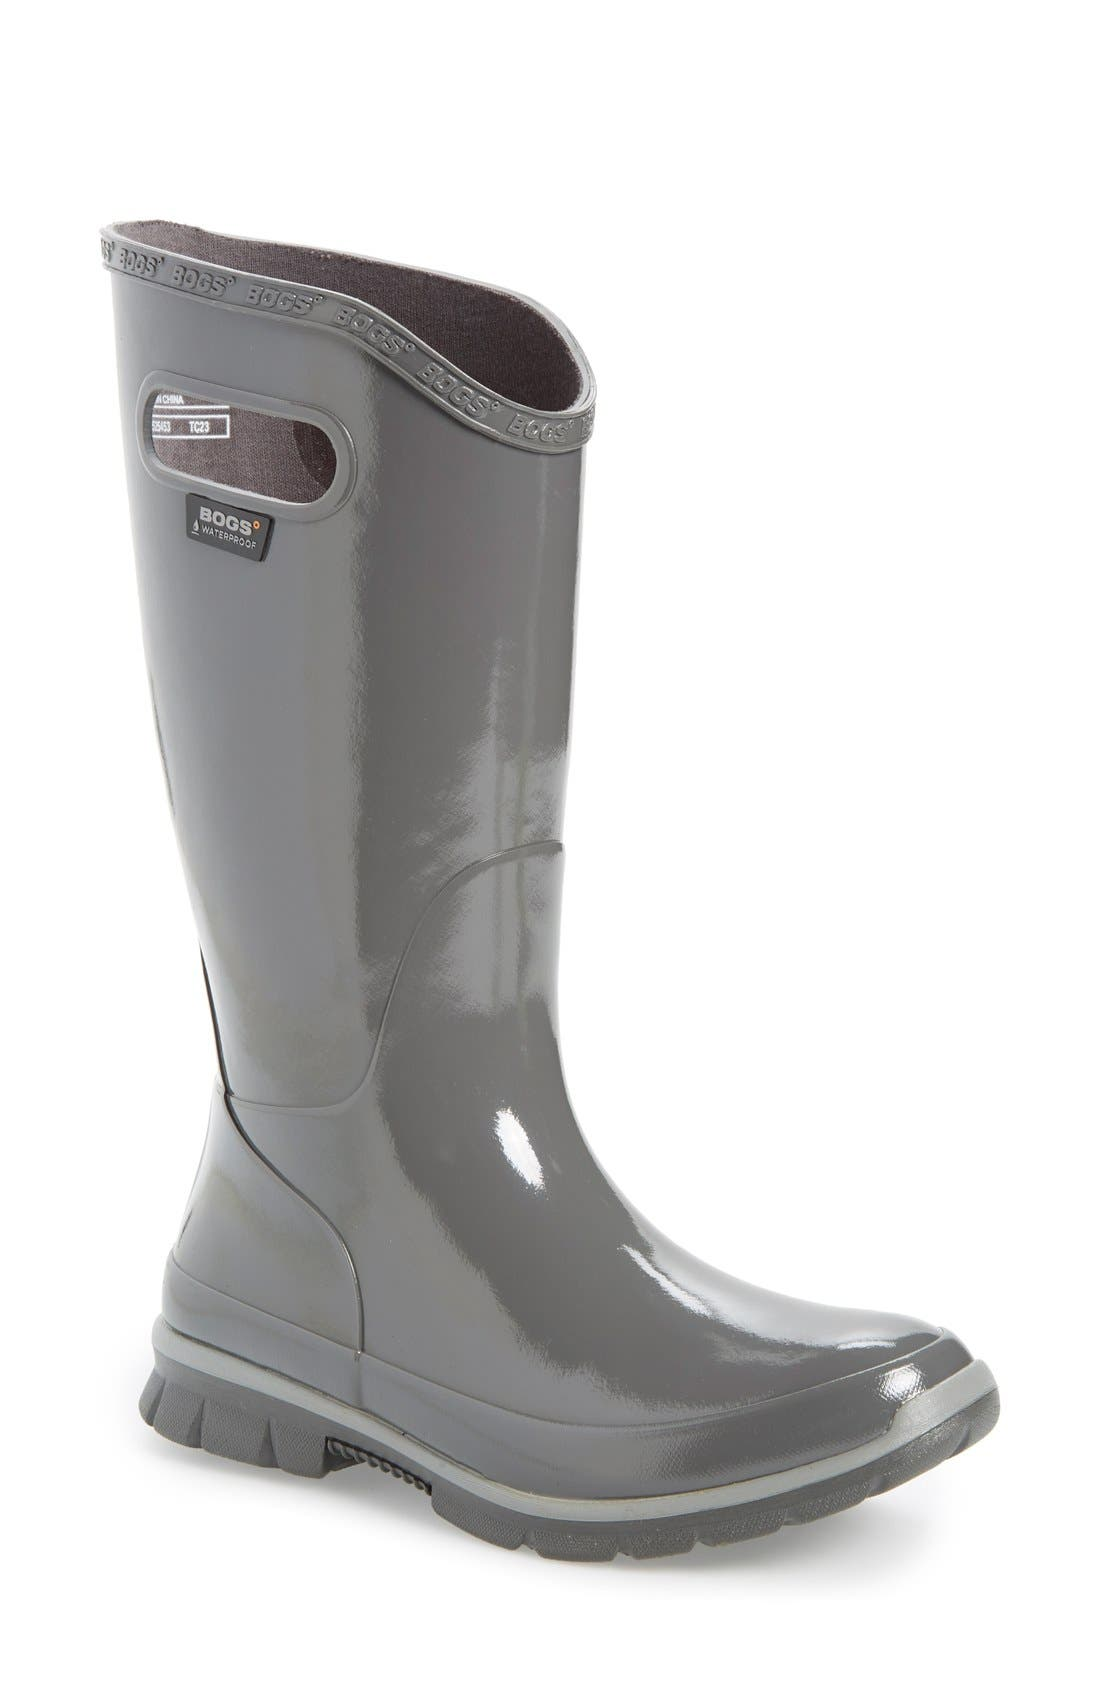 Main Image - Bogs 'Berkley' Waterproof Rain Boot (Women)